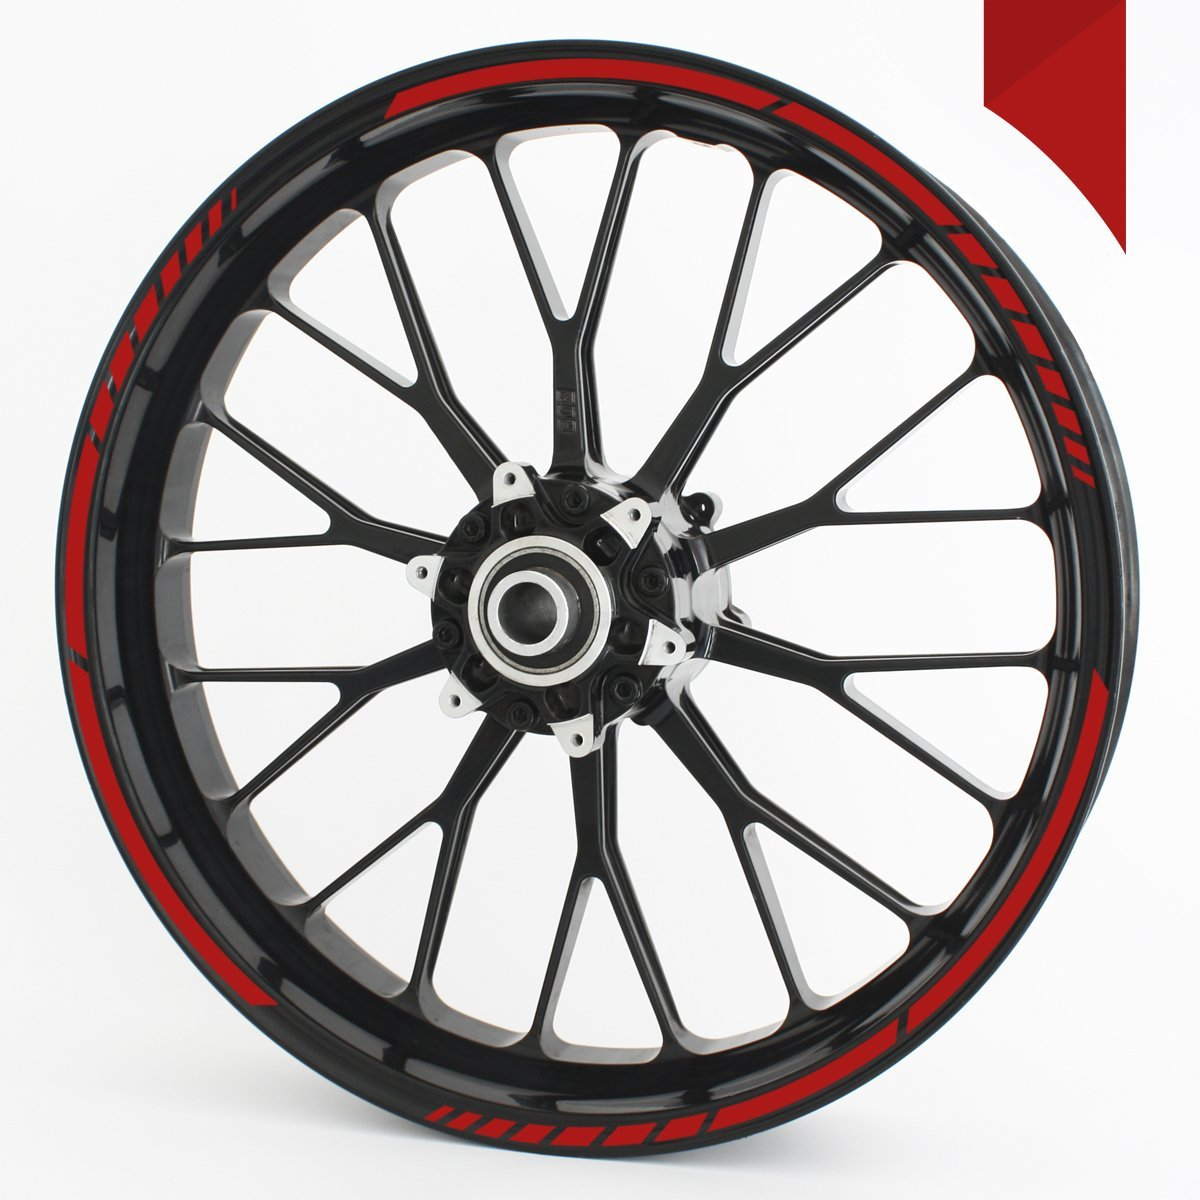 Wandkings GP wheel rim sticker for 15'', 16'', 17'', 18'' and 19'' Motorcycle & Car Wheels - colour selectable - RED